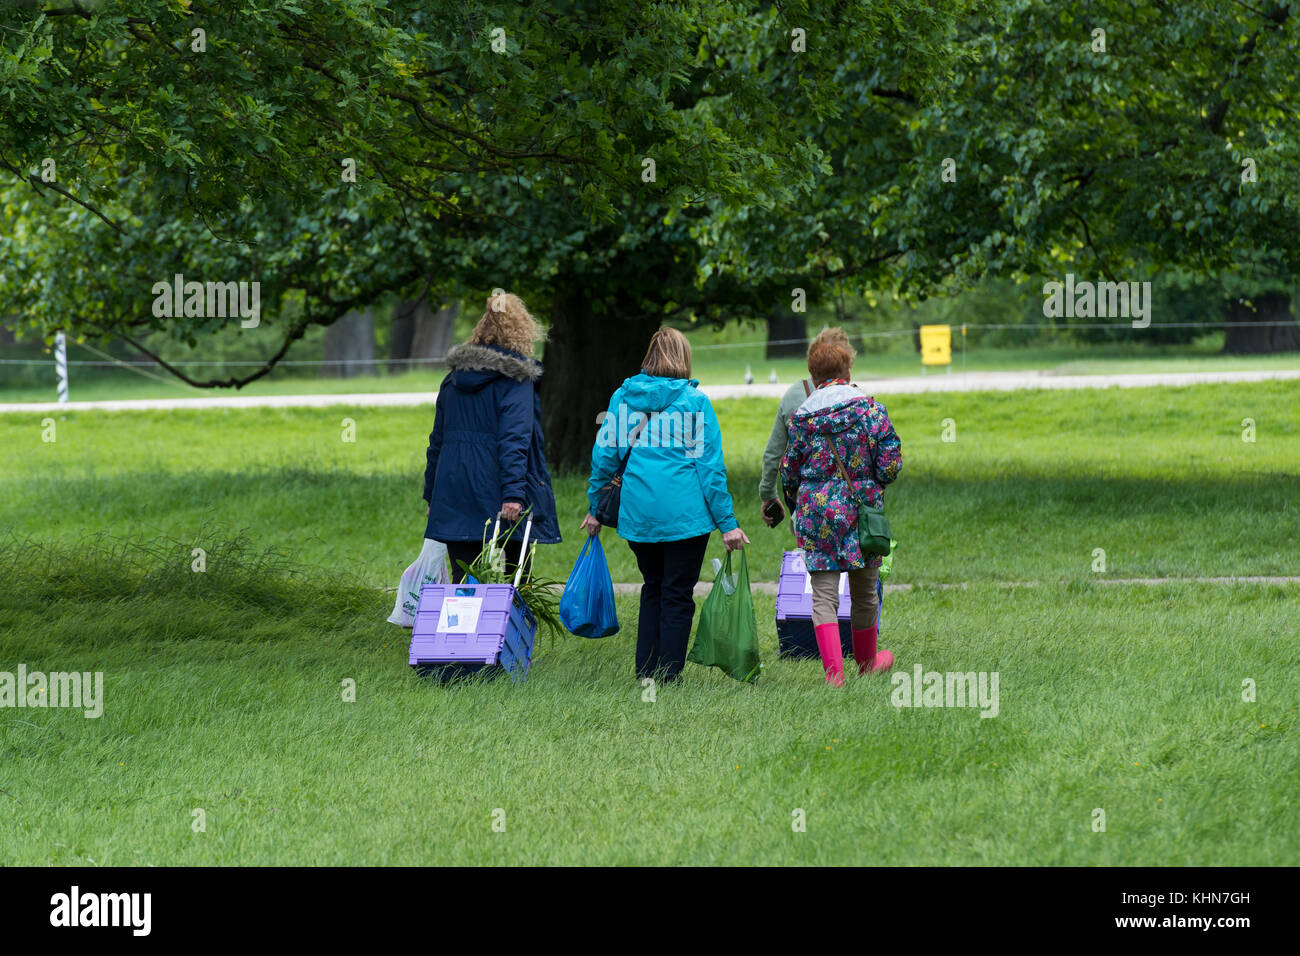 Time to go home for people walking & leaving showground with bags & folding shopping trolleys - RHS Chatsworth - Stock Image